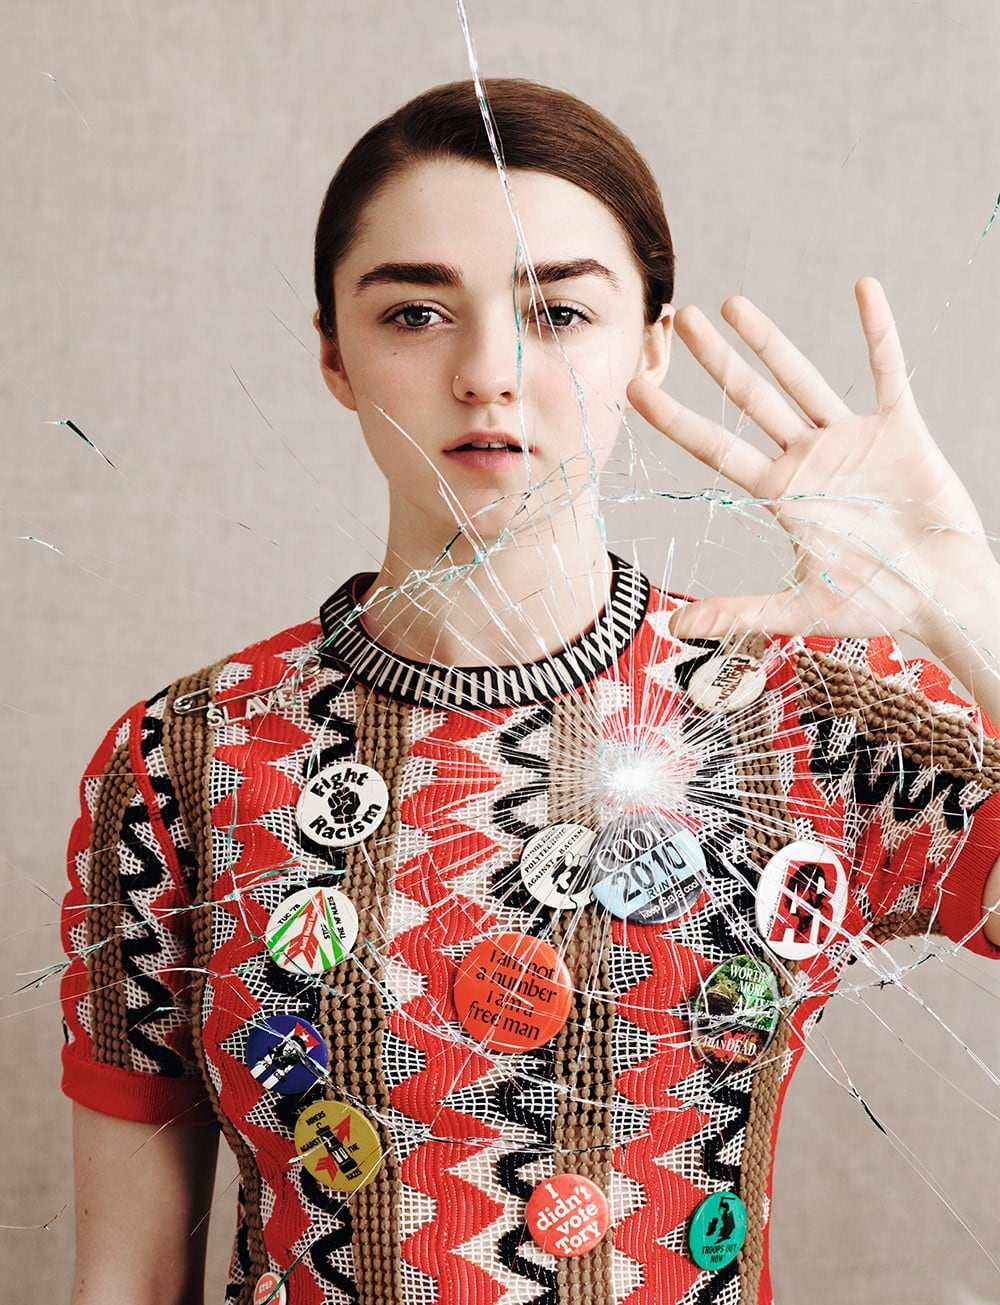 Maisie-Williams-Dazed-Confused-Magazine-2015-7